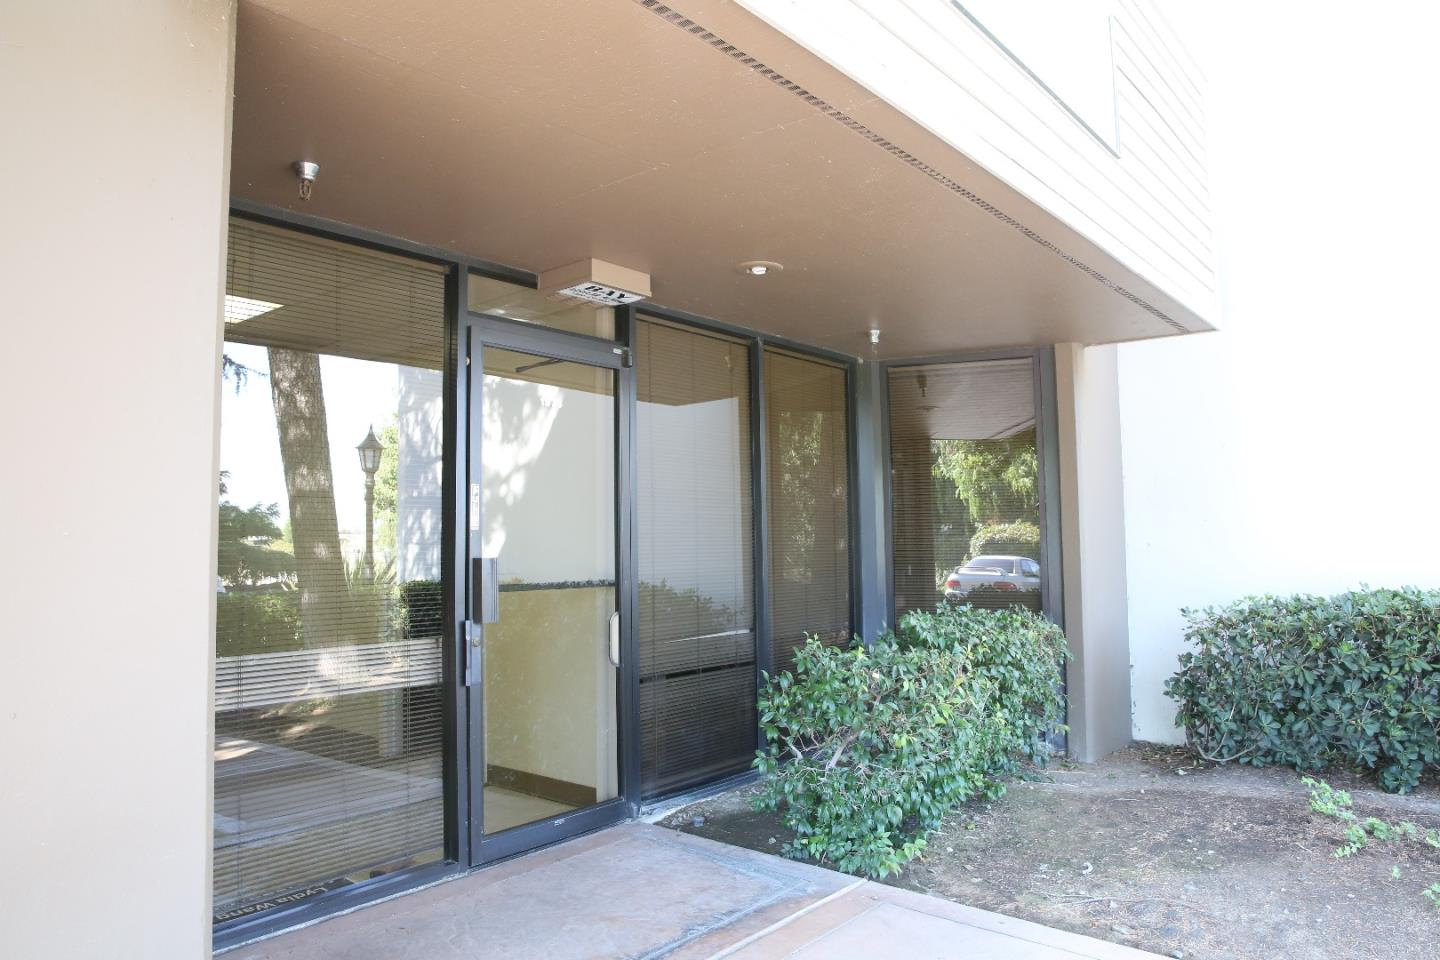 Additional photo for property listing at 1973&1975 Otoole Way  San Jose, California 95131 United States